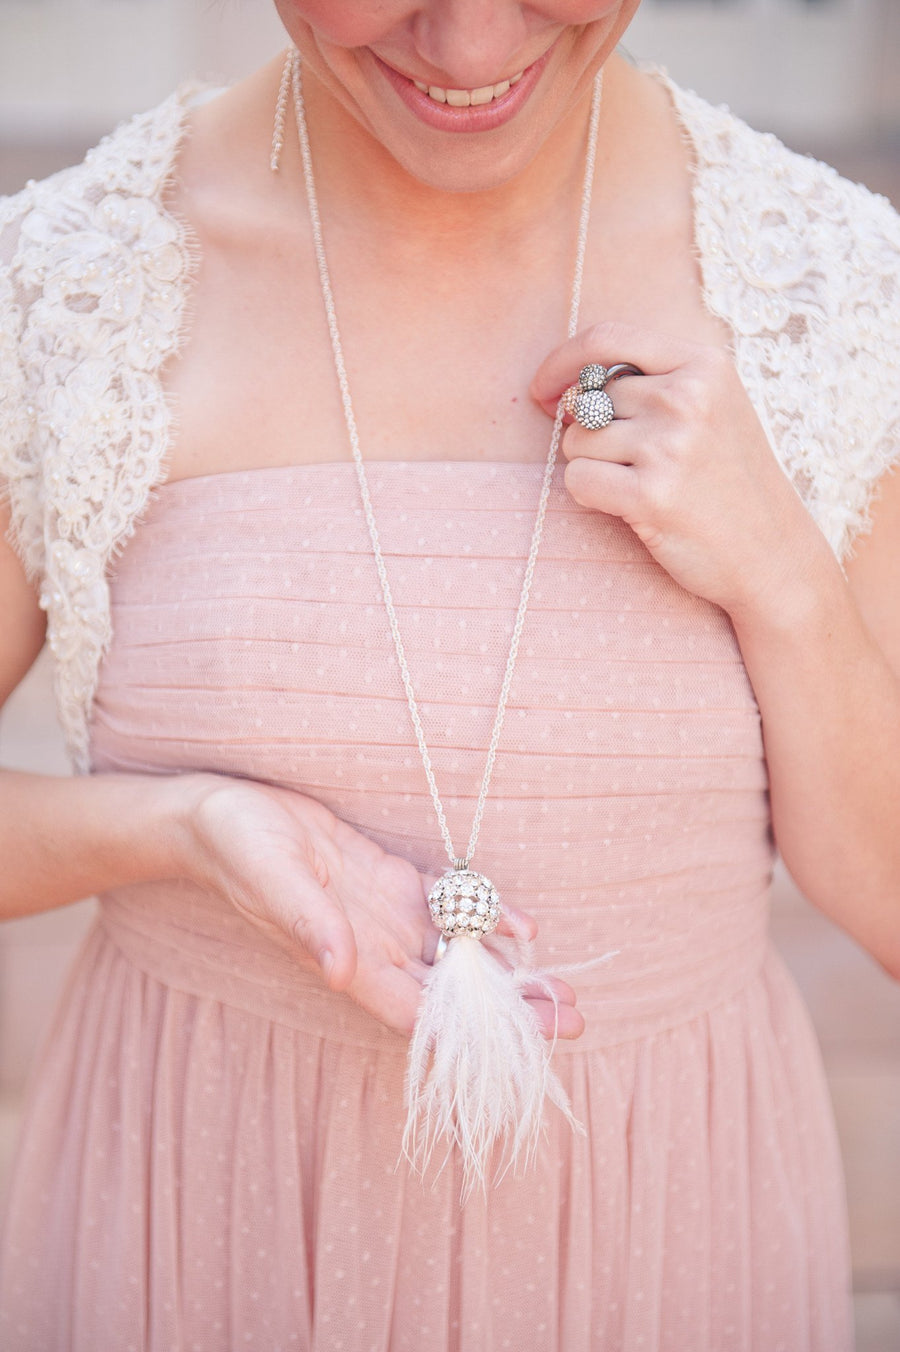 Danani | Ostrich Tassel Necklace - #212 in Ivory | Loblee Photography